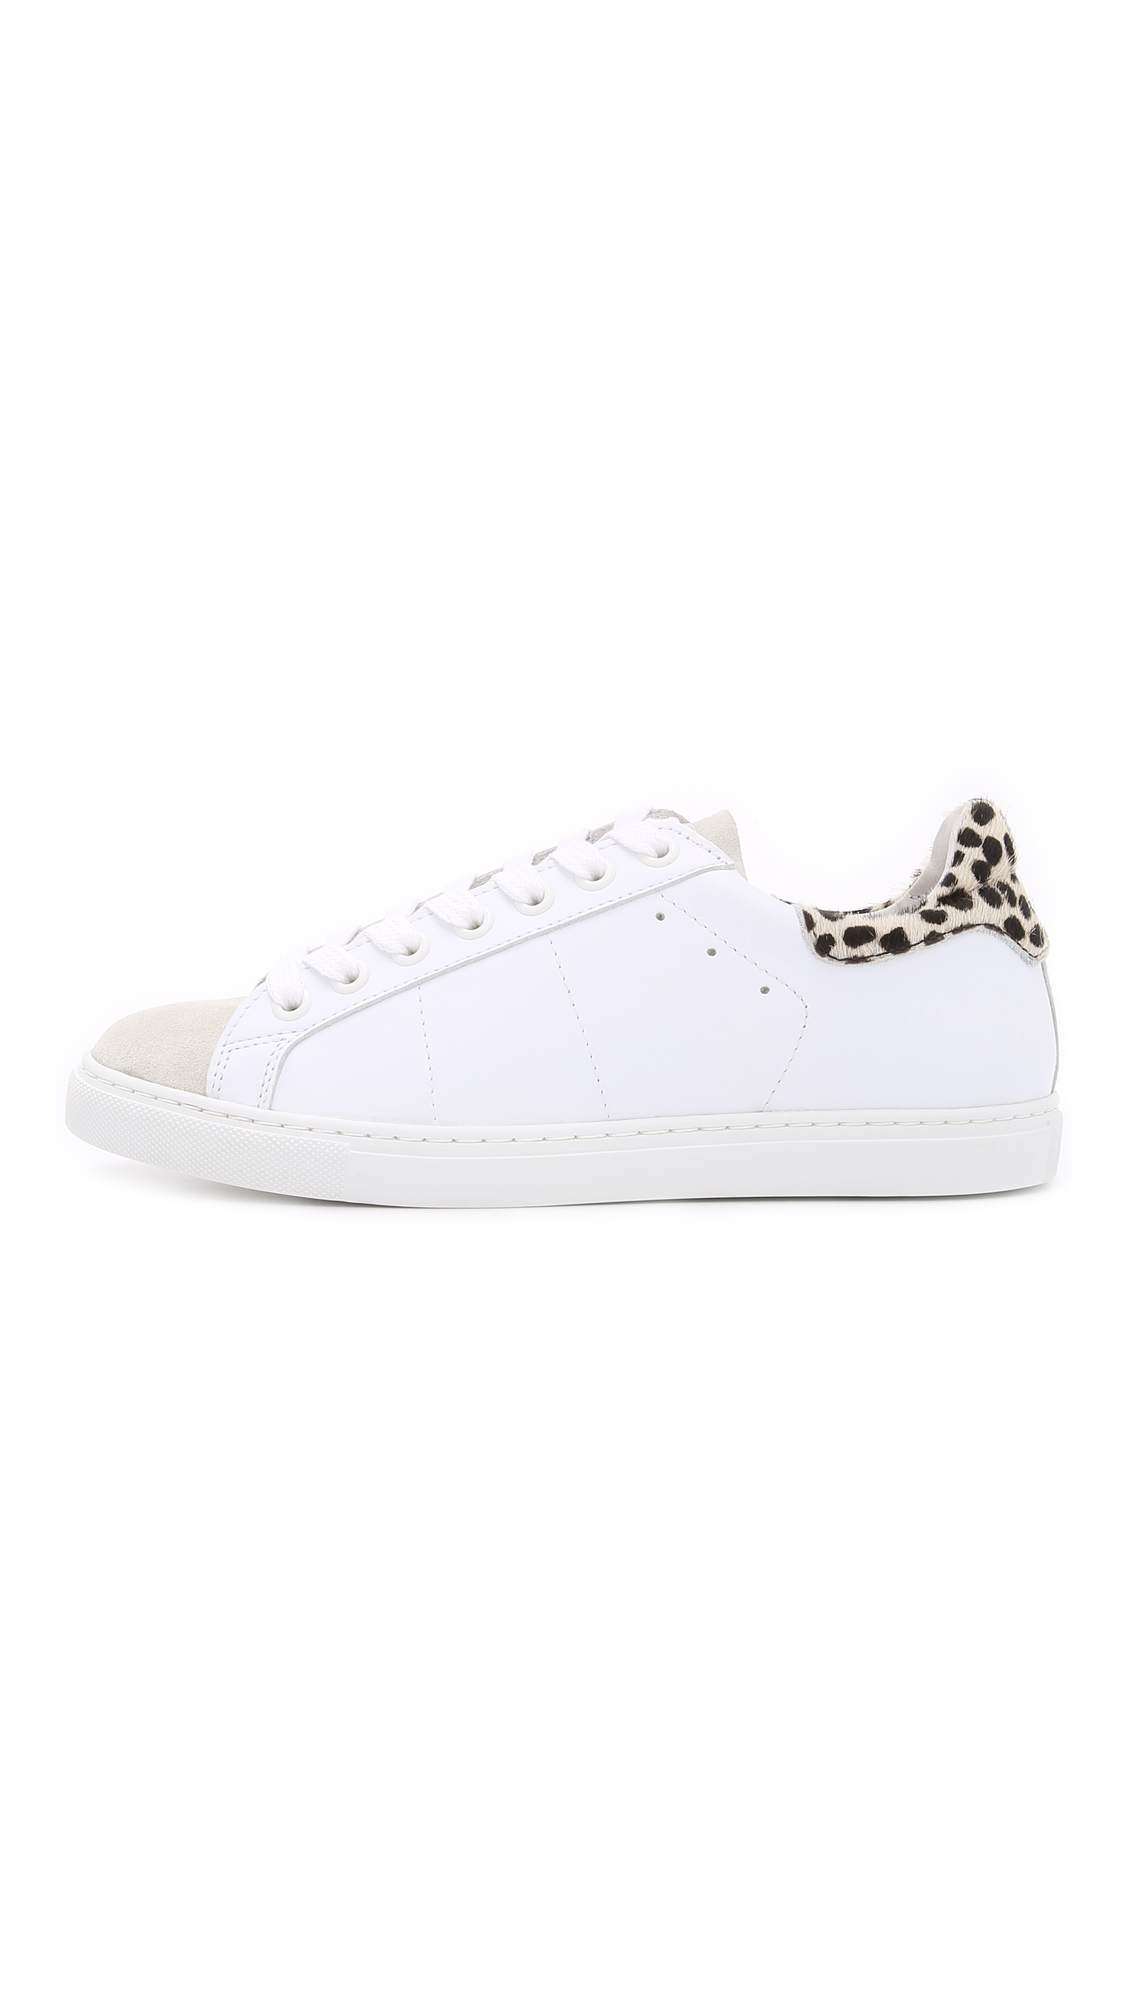 077422c558f434 Lyst - IRO Namuri Print Sneakers - White light Grey leopard in White